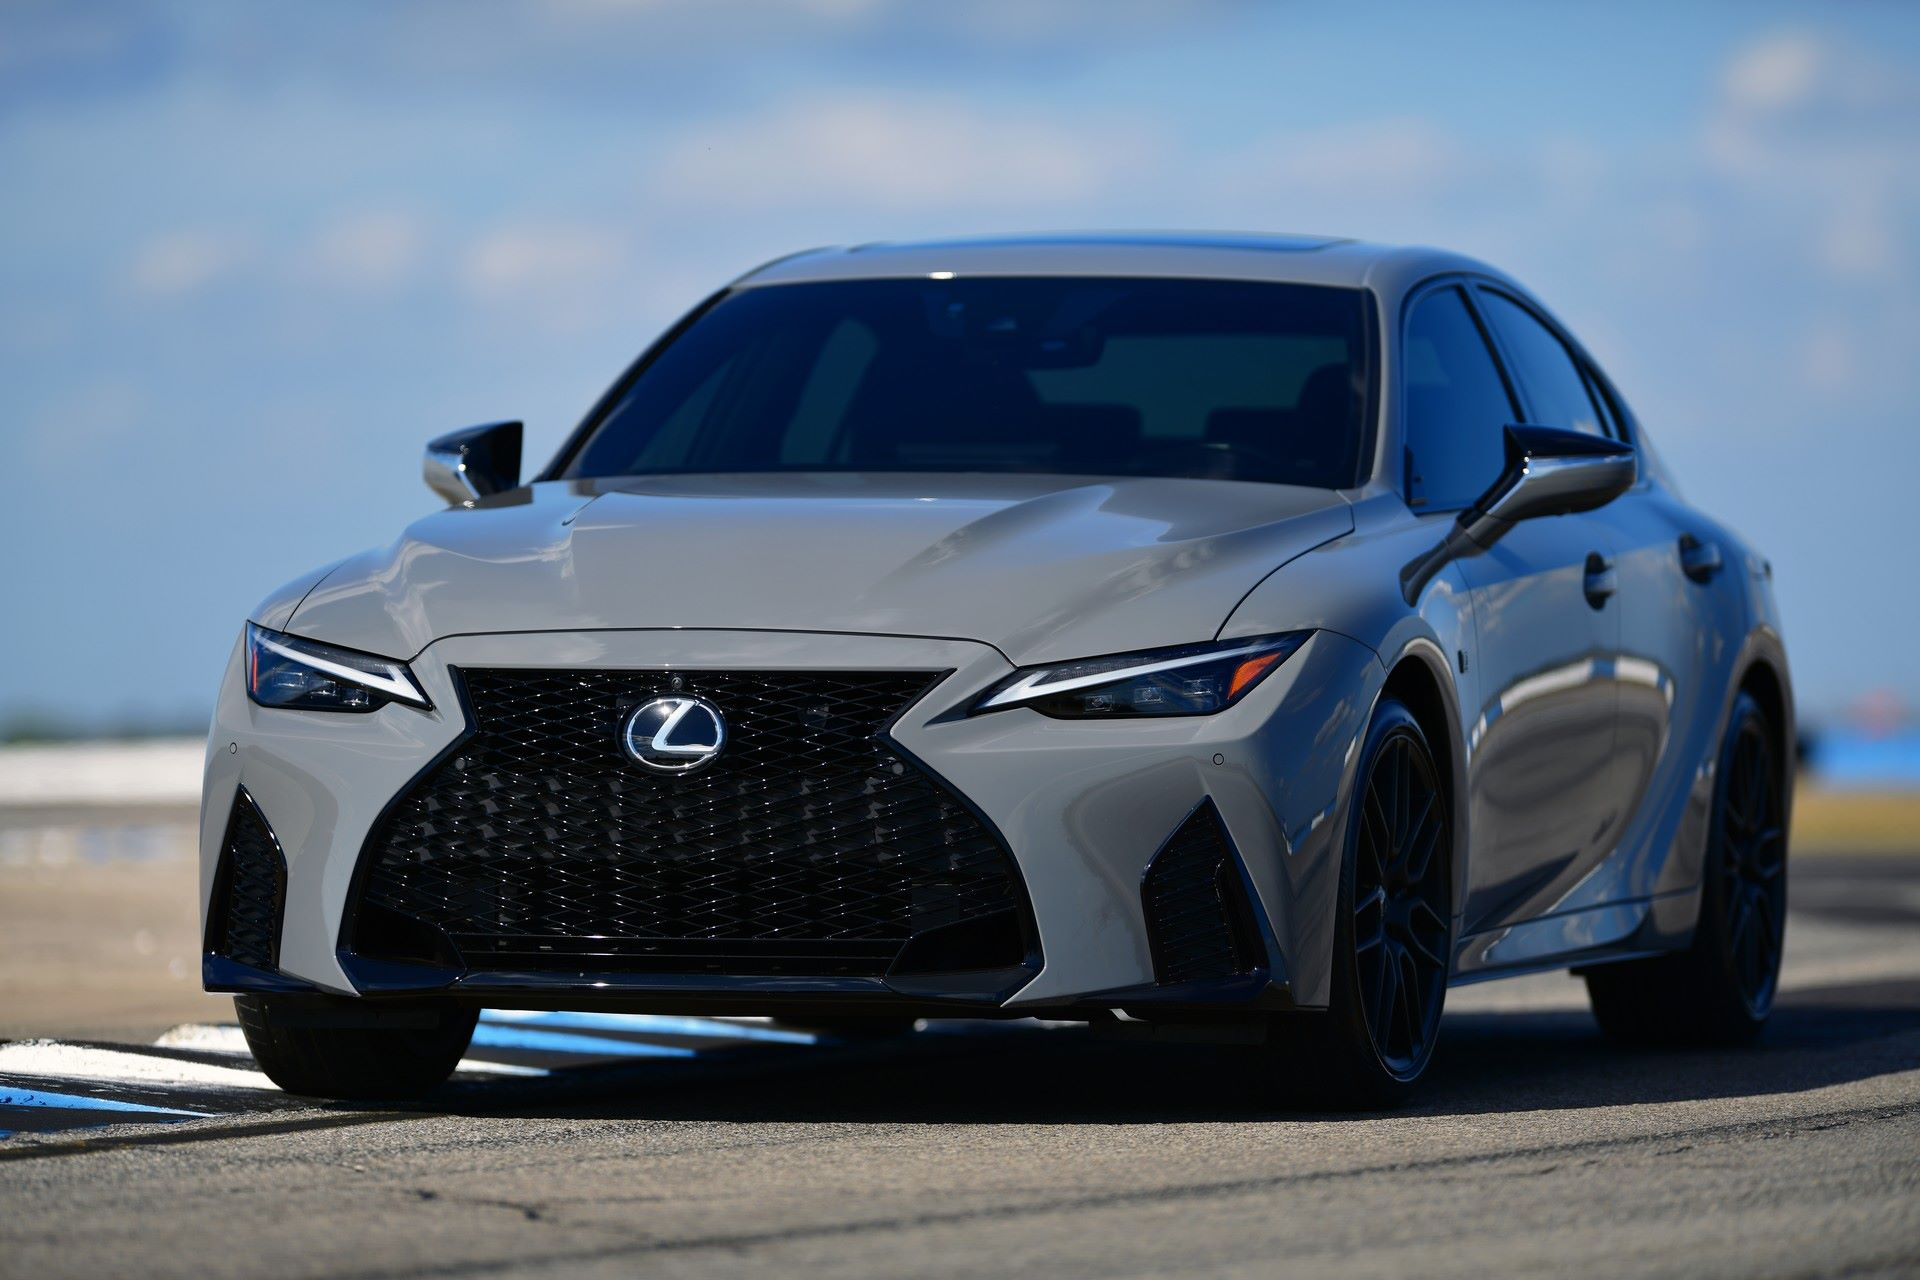 Lexus-IS-500-F-Sport-Performance-Launch-Edition-27